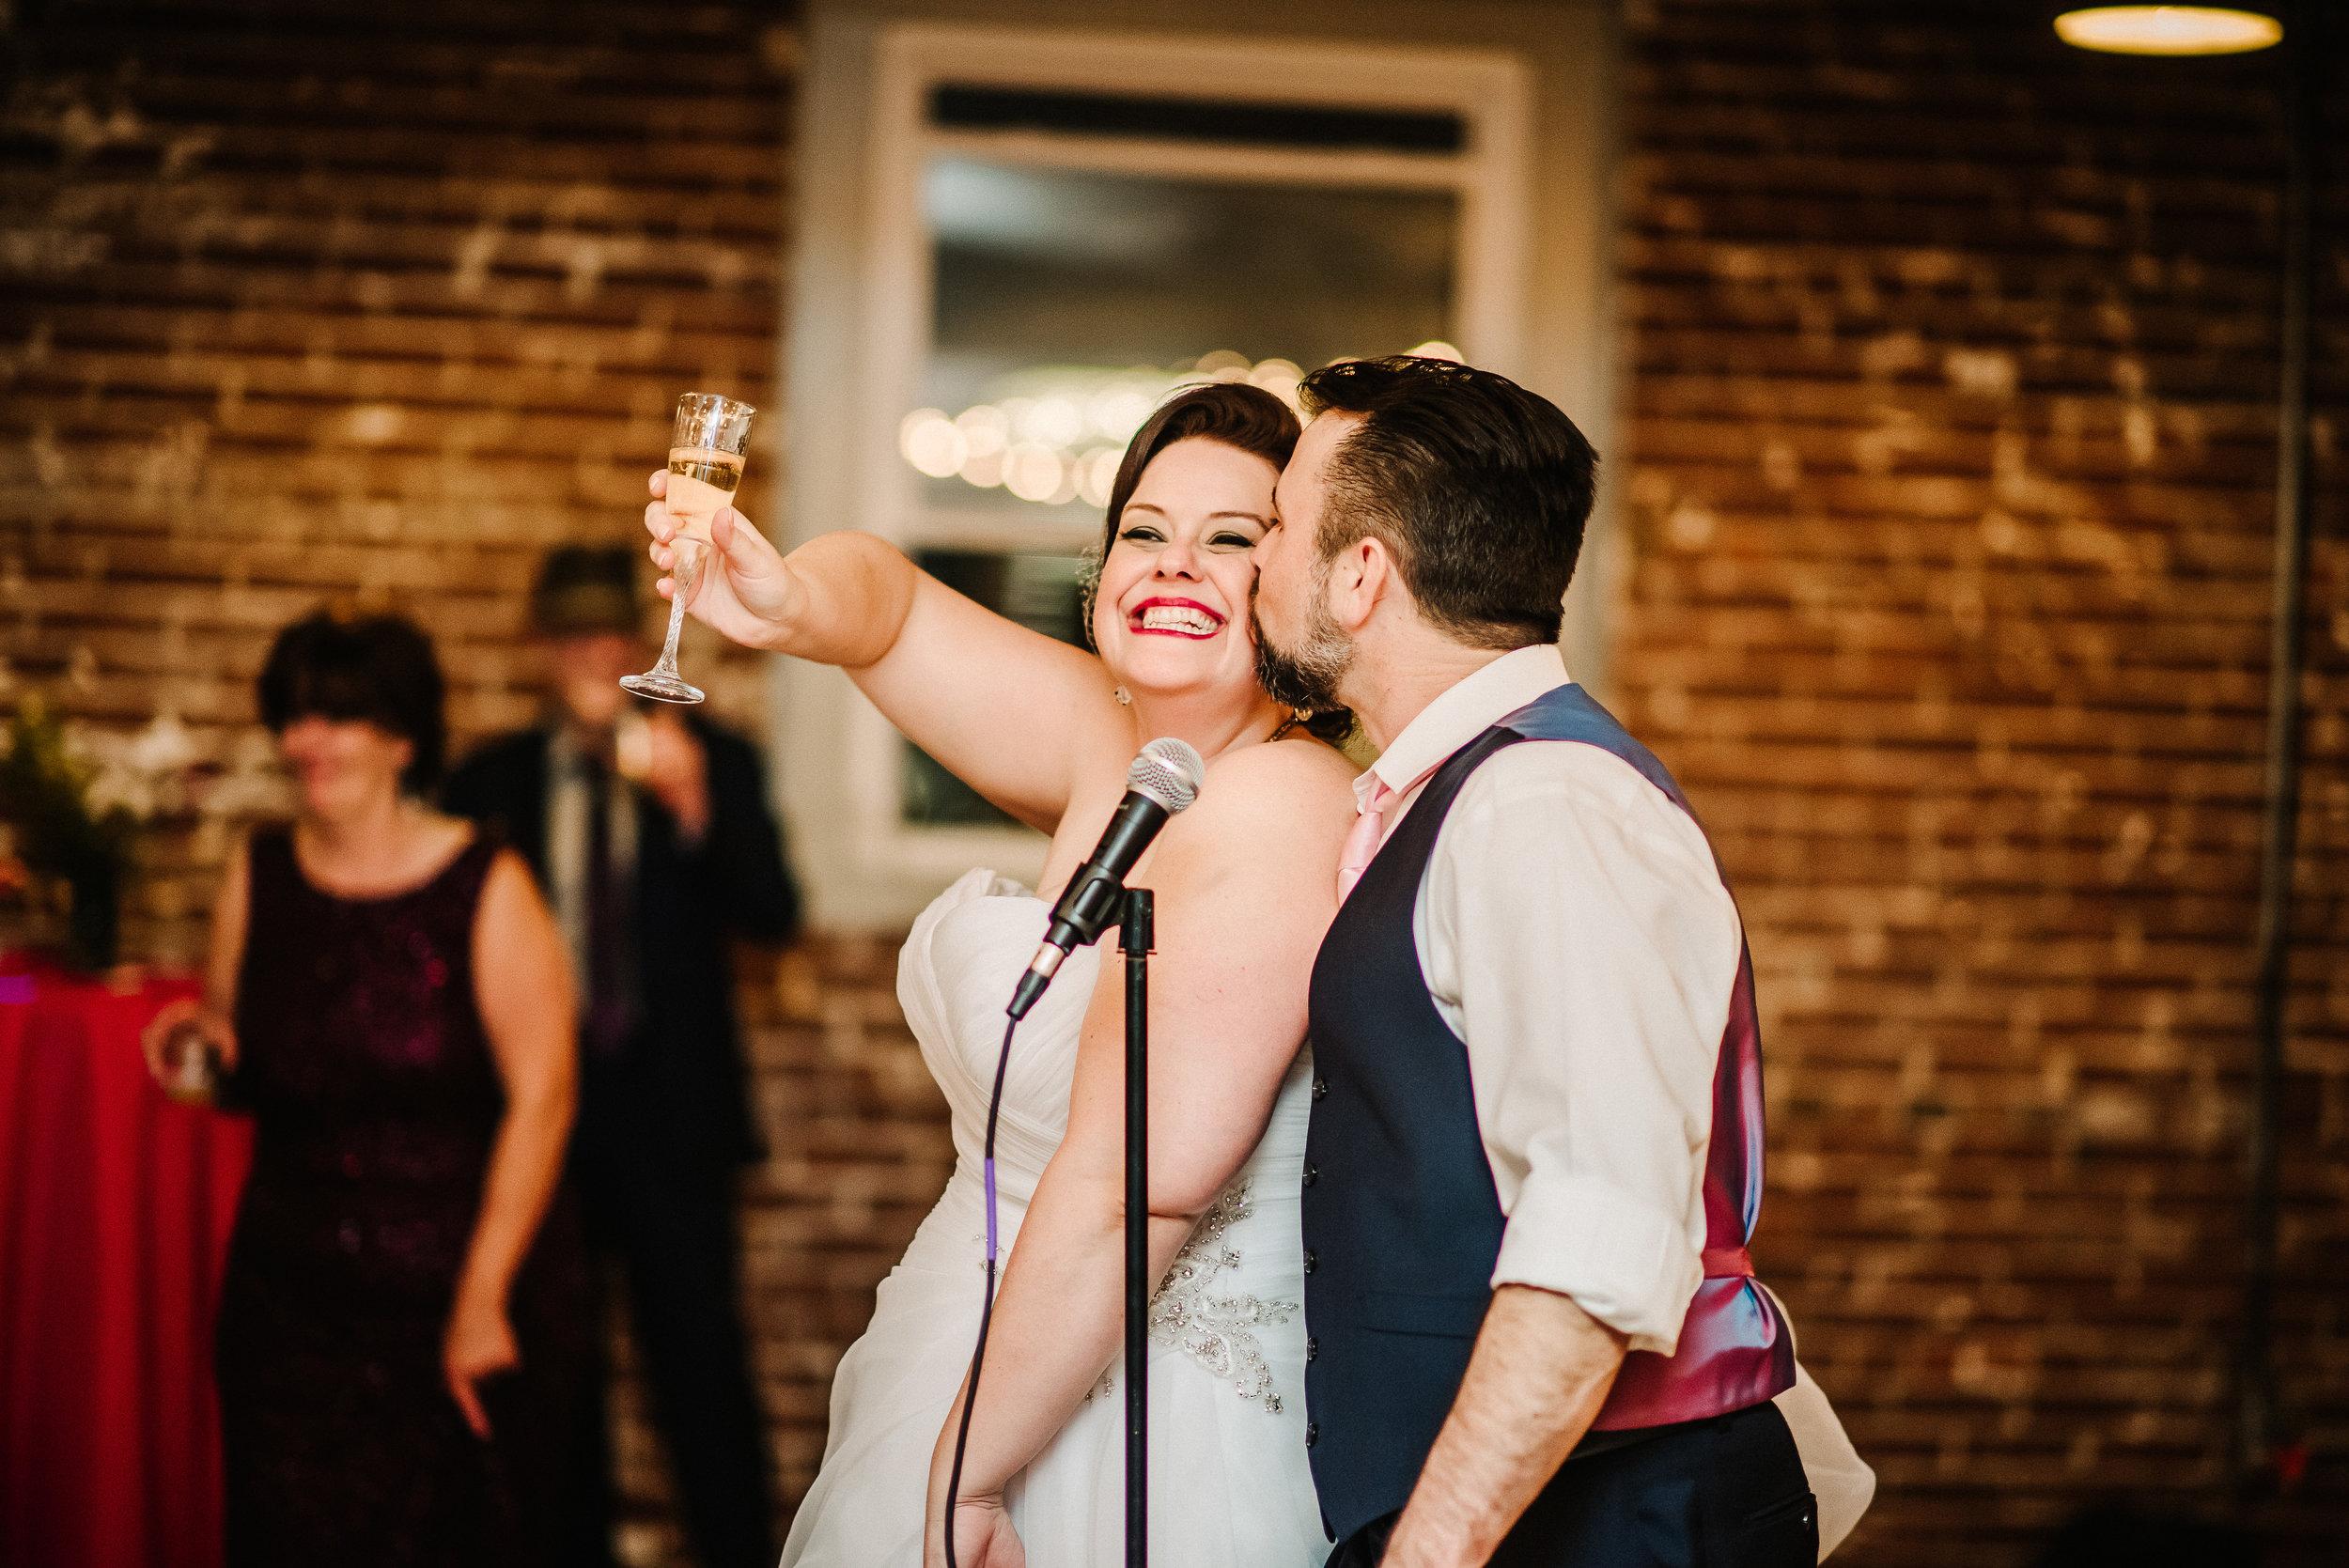 409 South Main Wedding_Morris Wedding_Ashley Benham Photography-992.jpg